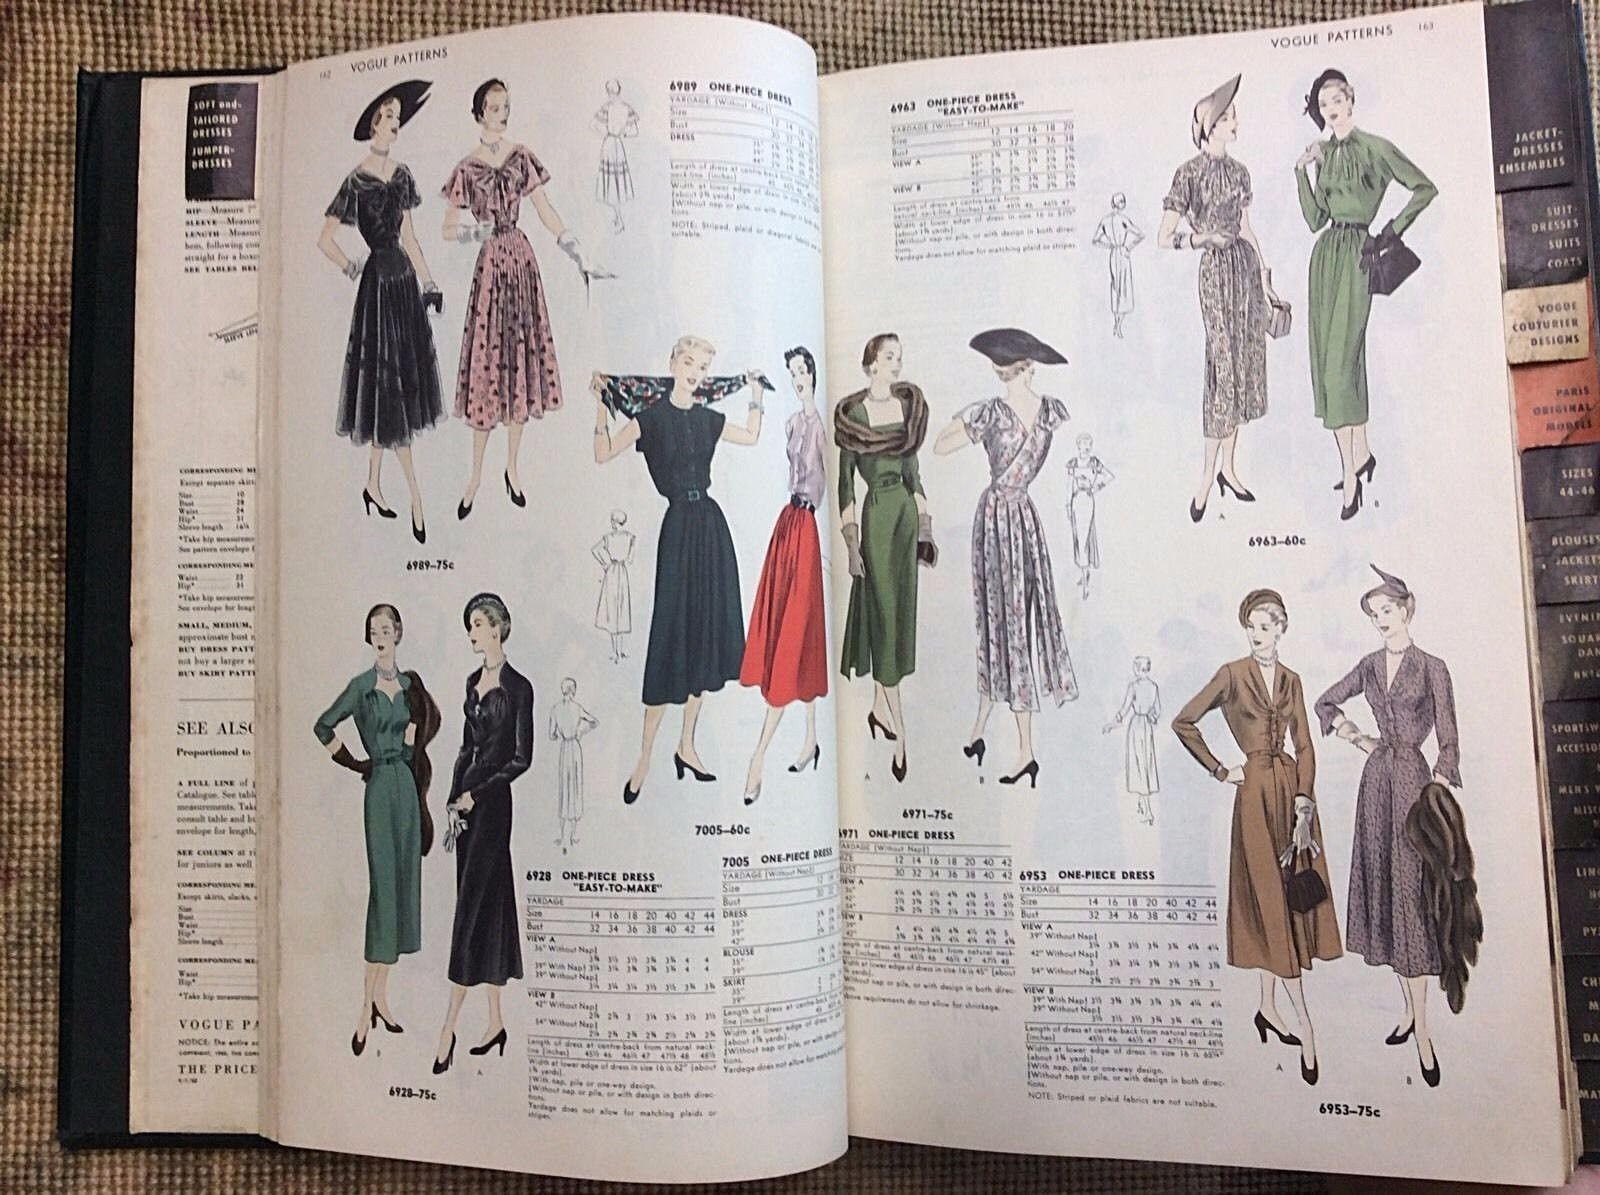 Vtg Vogue Sewing Pattern Counter Catalog July 1950 Hard Bound Book ...